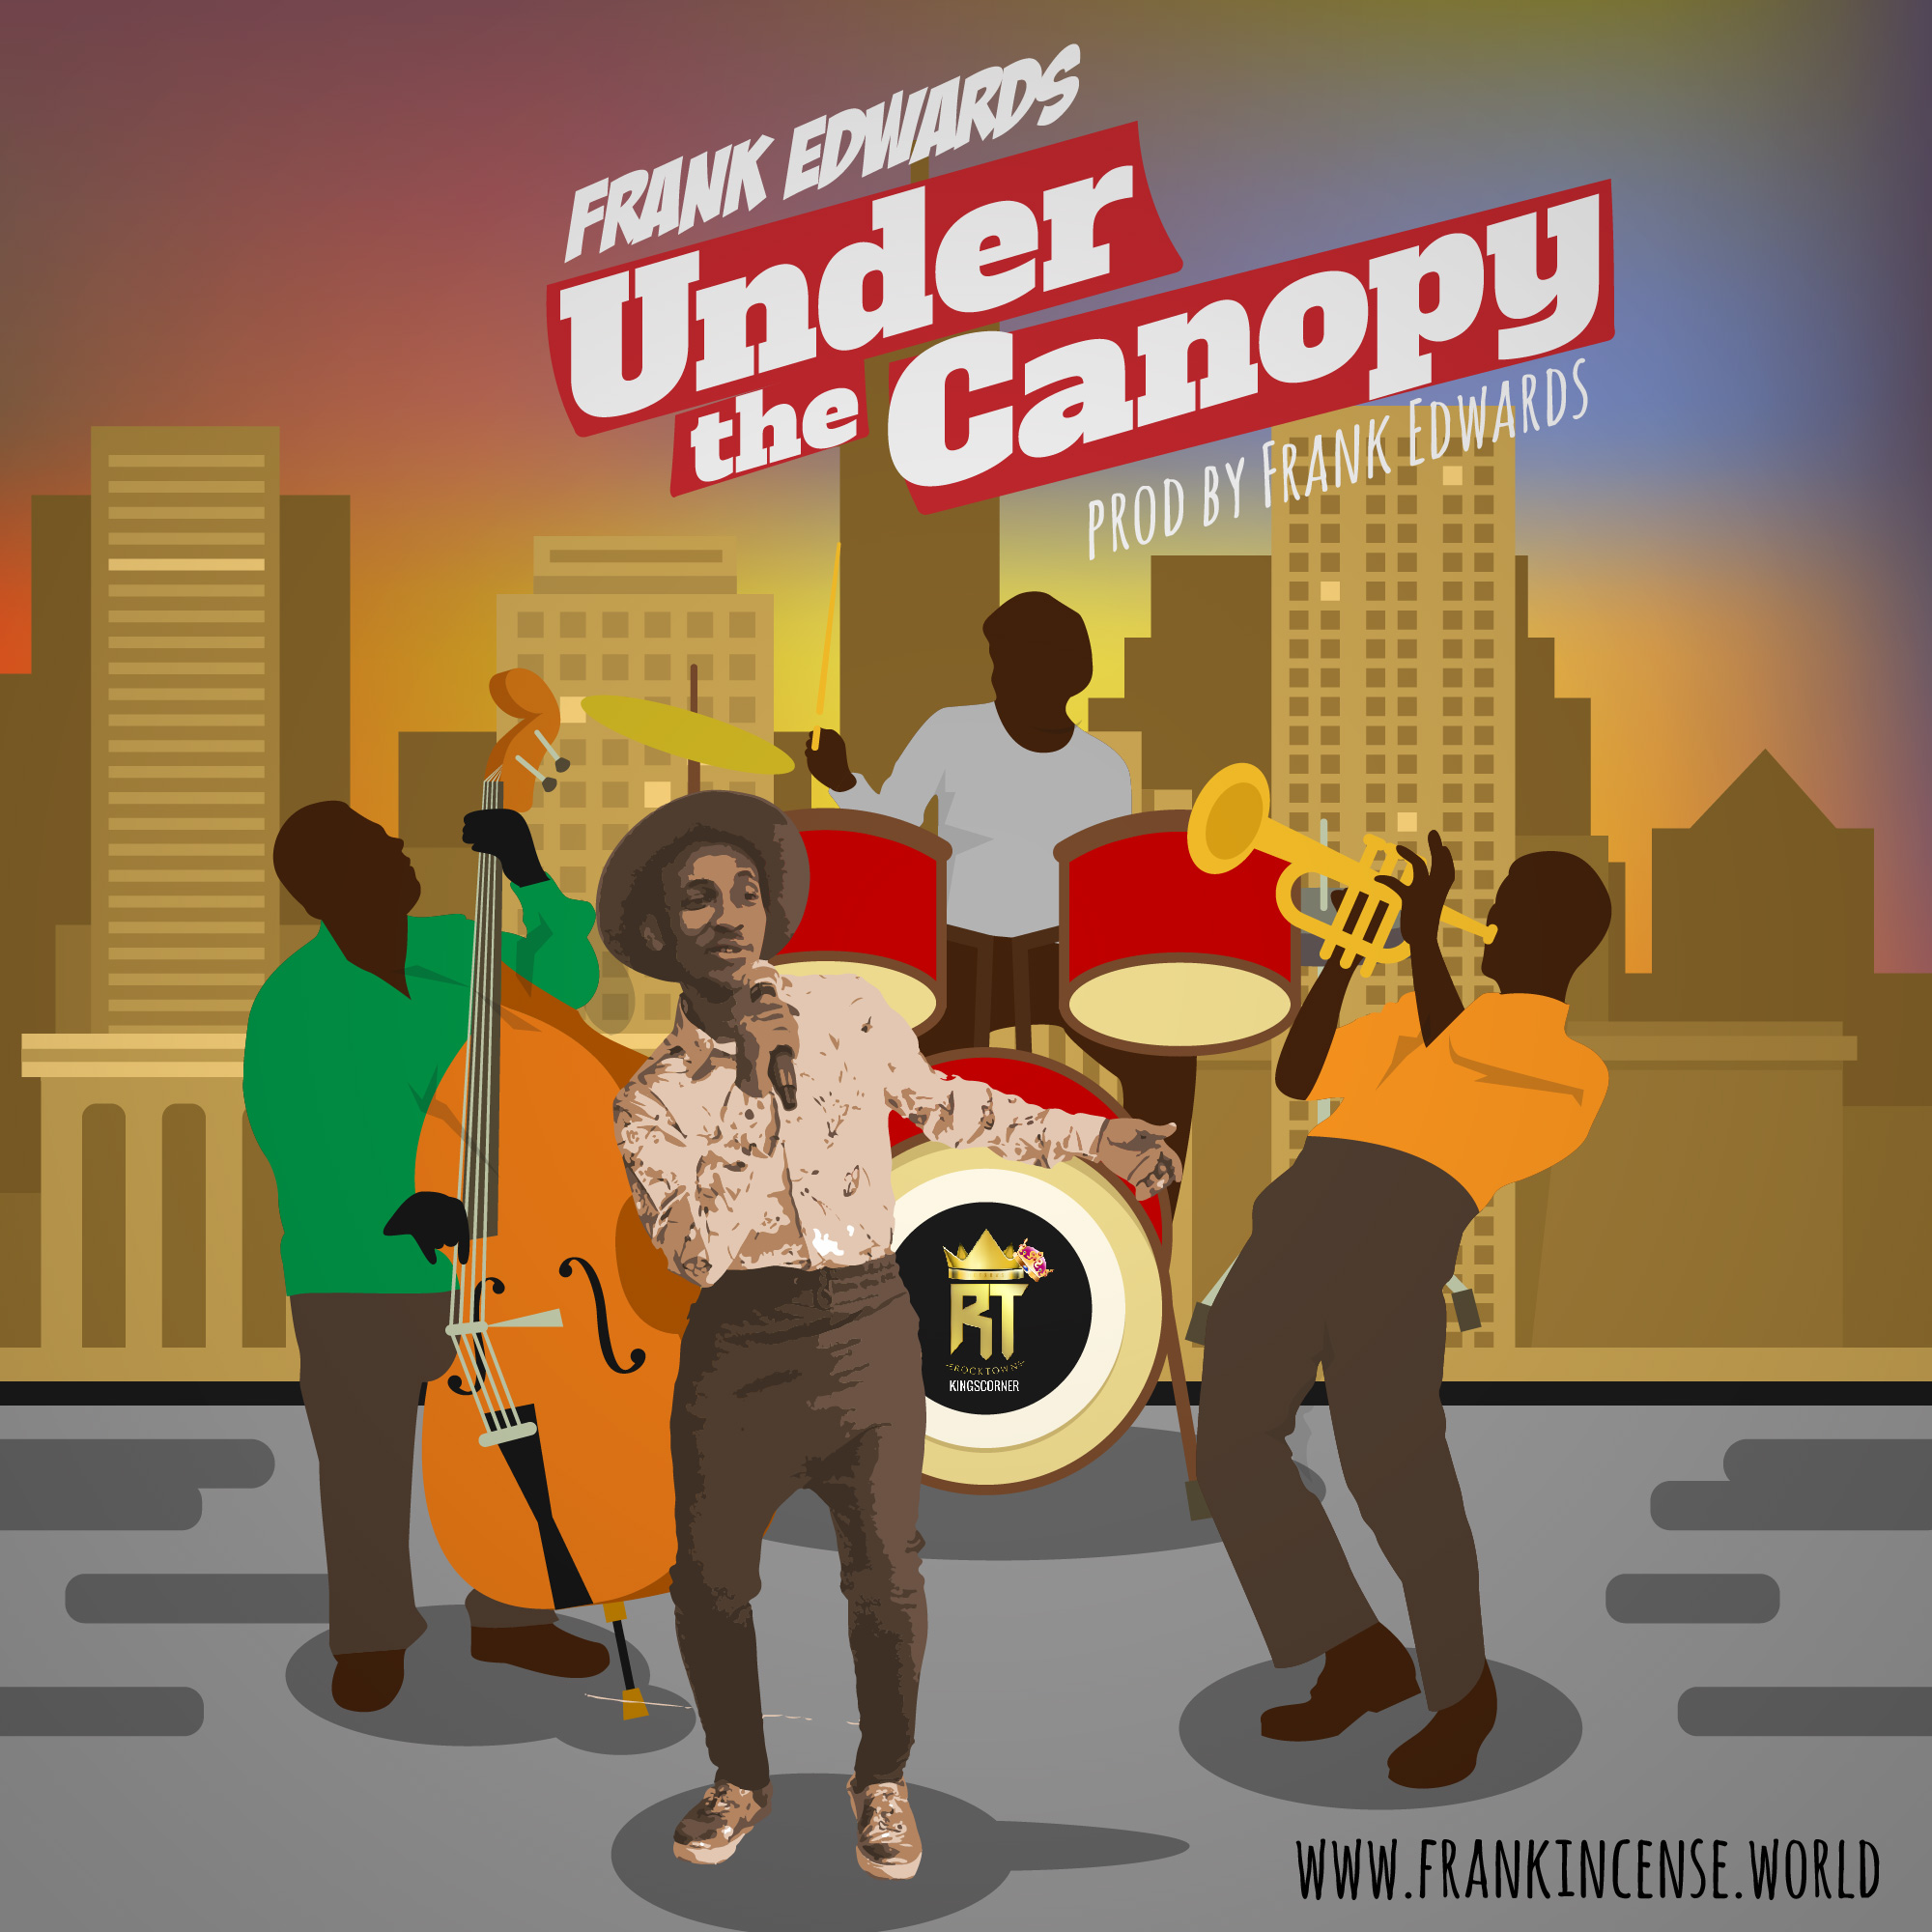 Music: Under The Canopy ~ Frank Edwards [@FrankRichBoy]